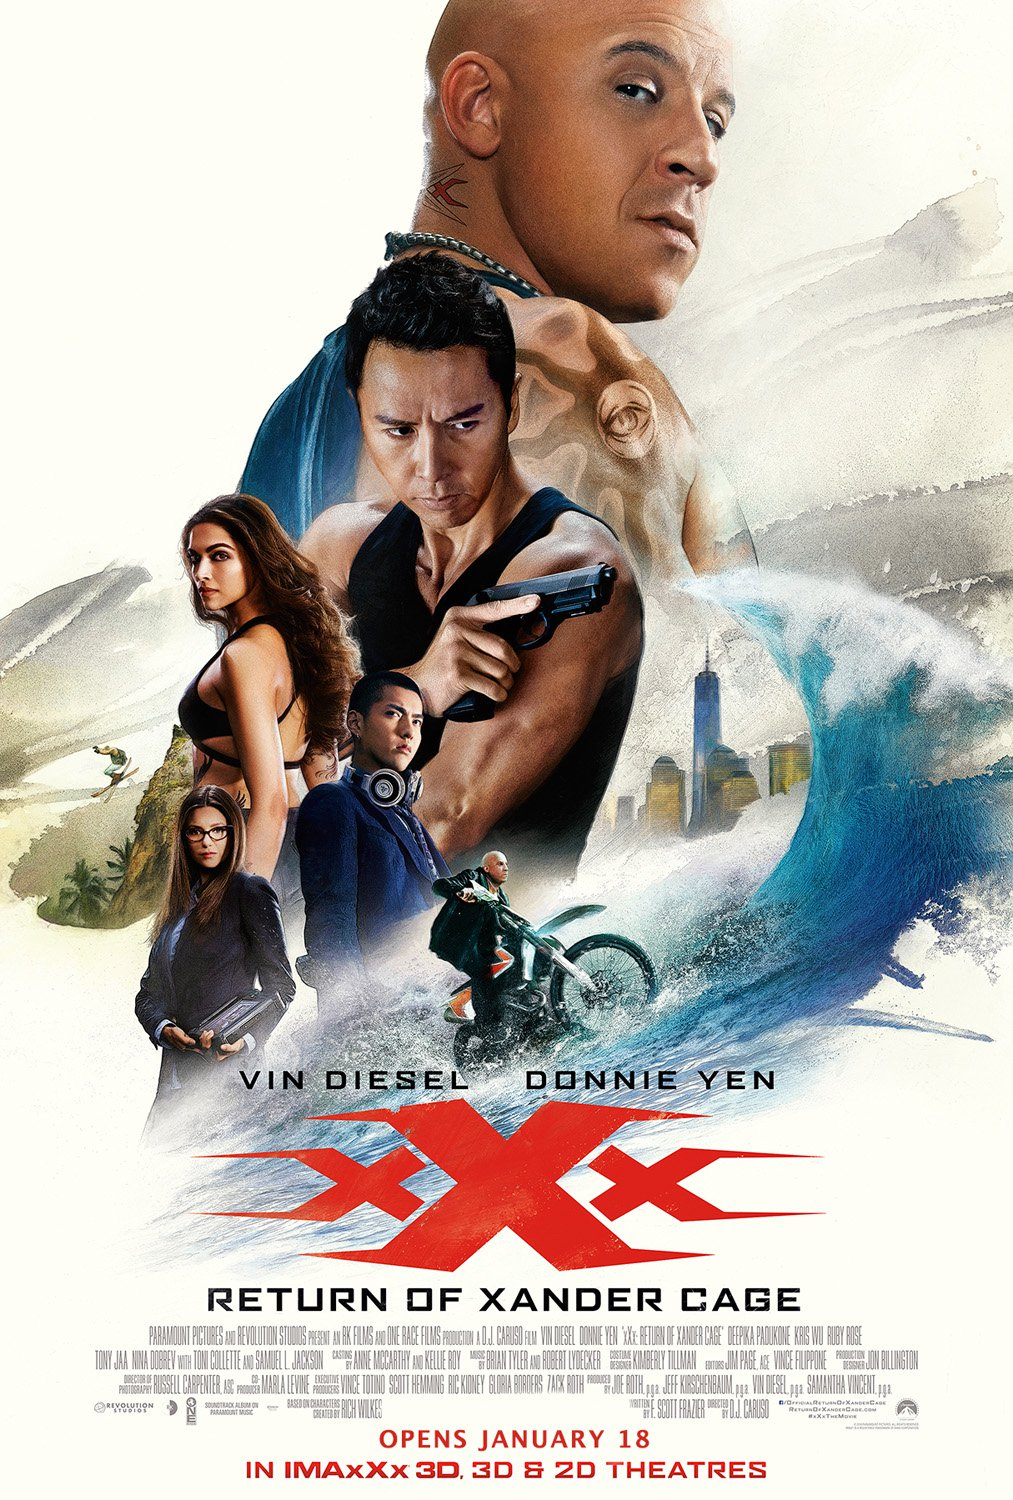 xxx return of xander cage movie review tiffanyyong